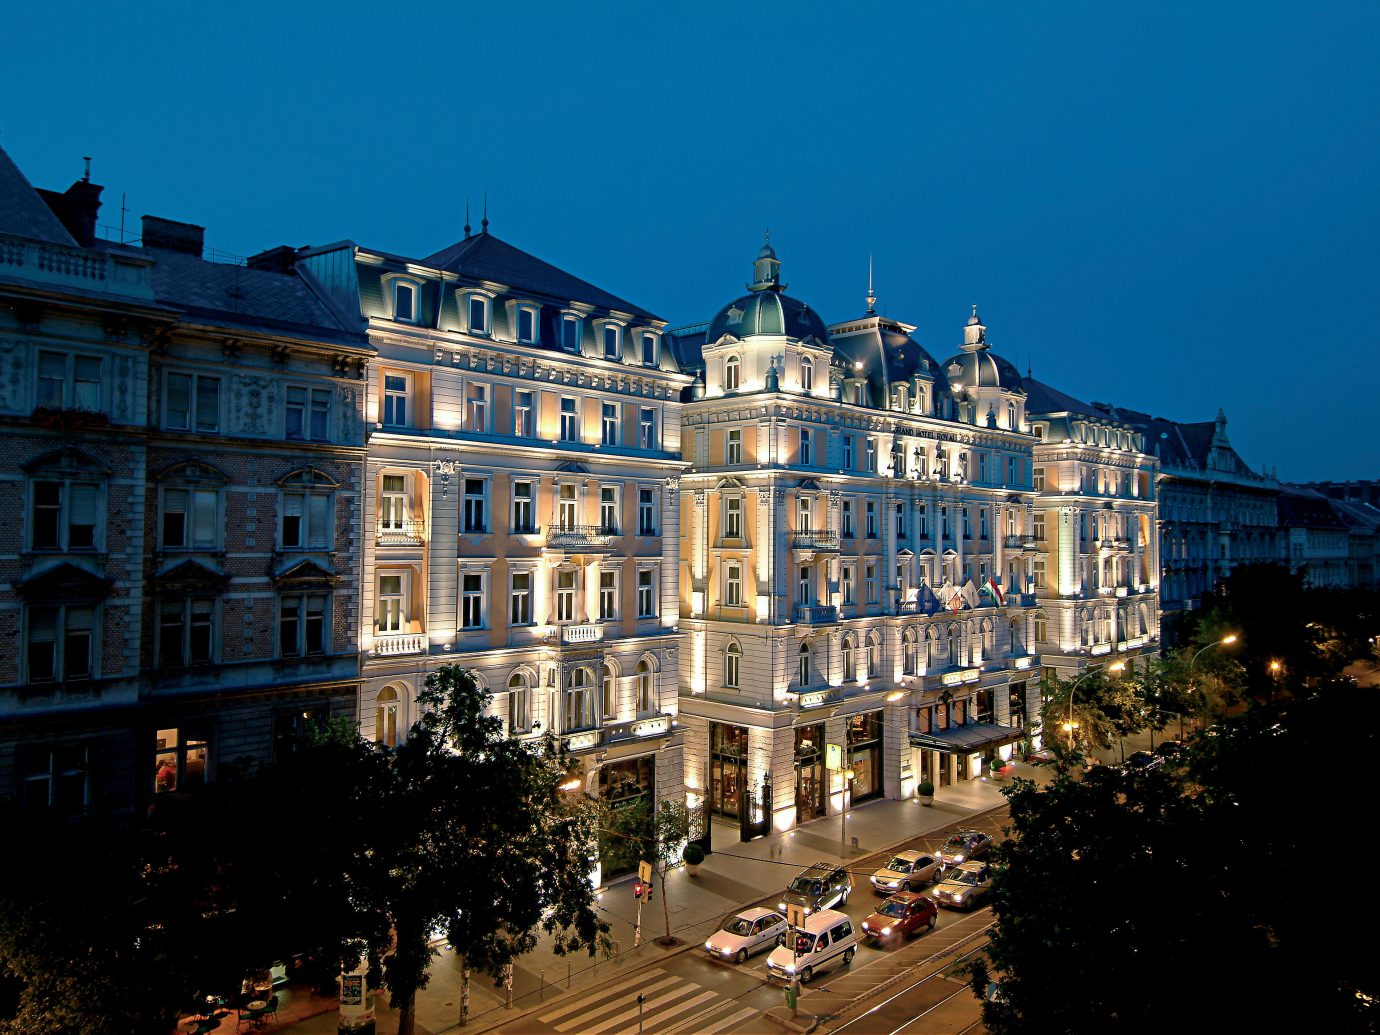 Architecture Budapest Buildings City Elegant europe Exterior Family Historic Hotels Hungary Luxury Trip Ideas outdoor metropolitan area landmark Town urban area cityscape night human settlement neighbourhood evening metropolis Downtown château street town square waterway plaza palace dusk crowd